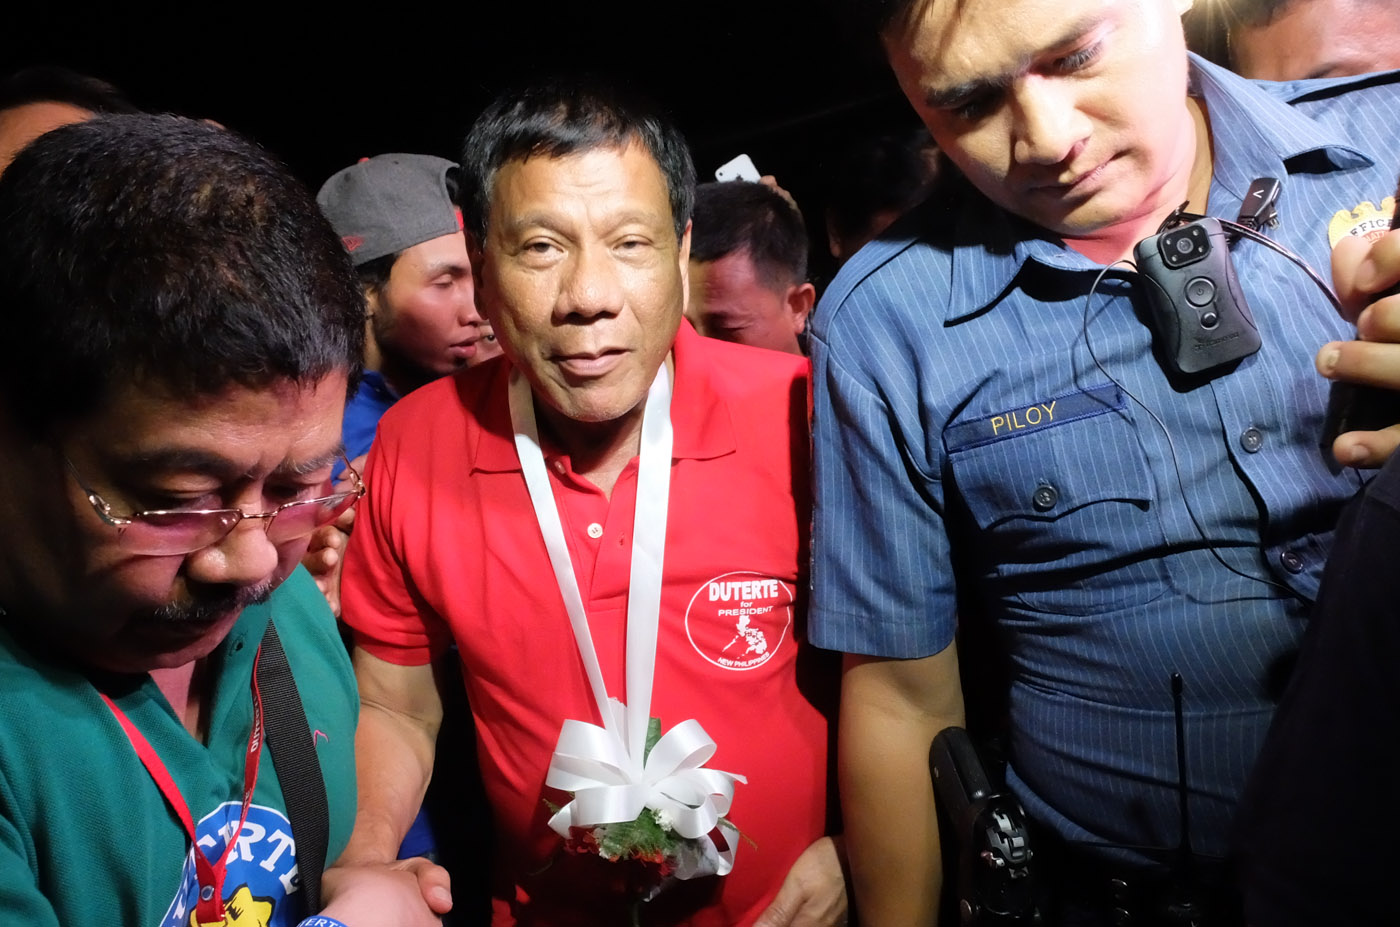 'BAD REMARK.' Davao City Mayor Rodrigo Duterte says he will not apologize for his controversial joke about rape. File photo by Alecs Ongcal/Rappler